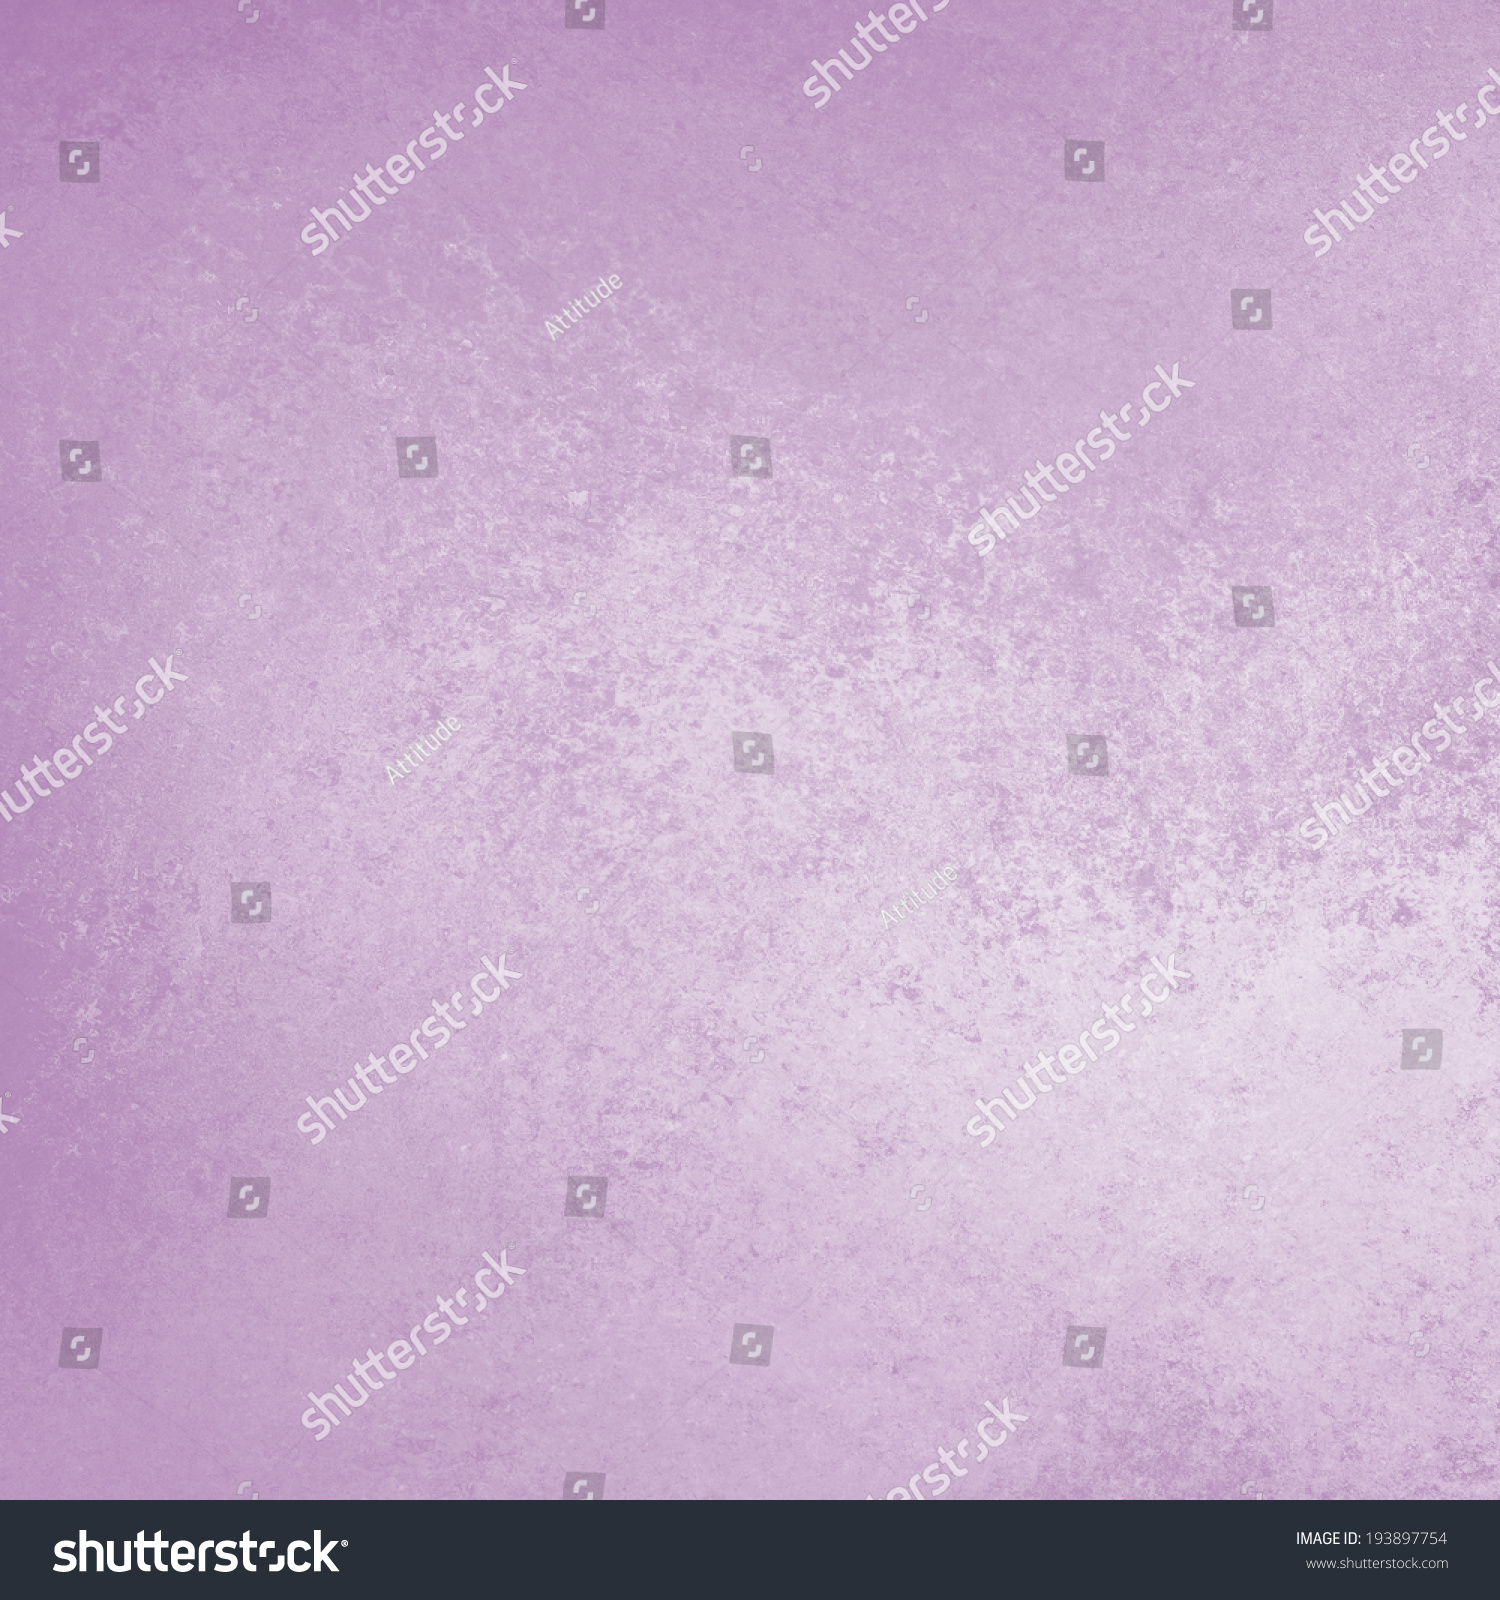 soft light texture. plain pastel pink background with solid color and vintage distressed texture soft light white corner